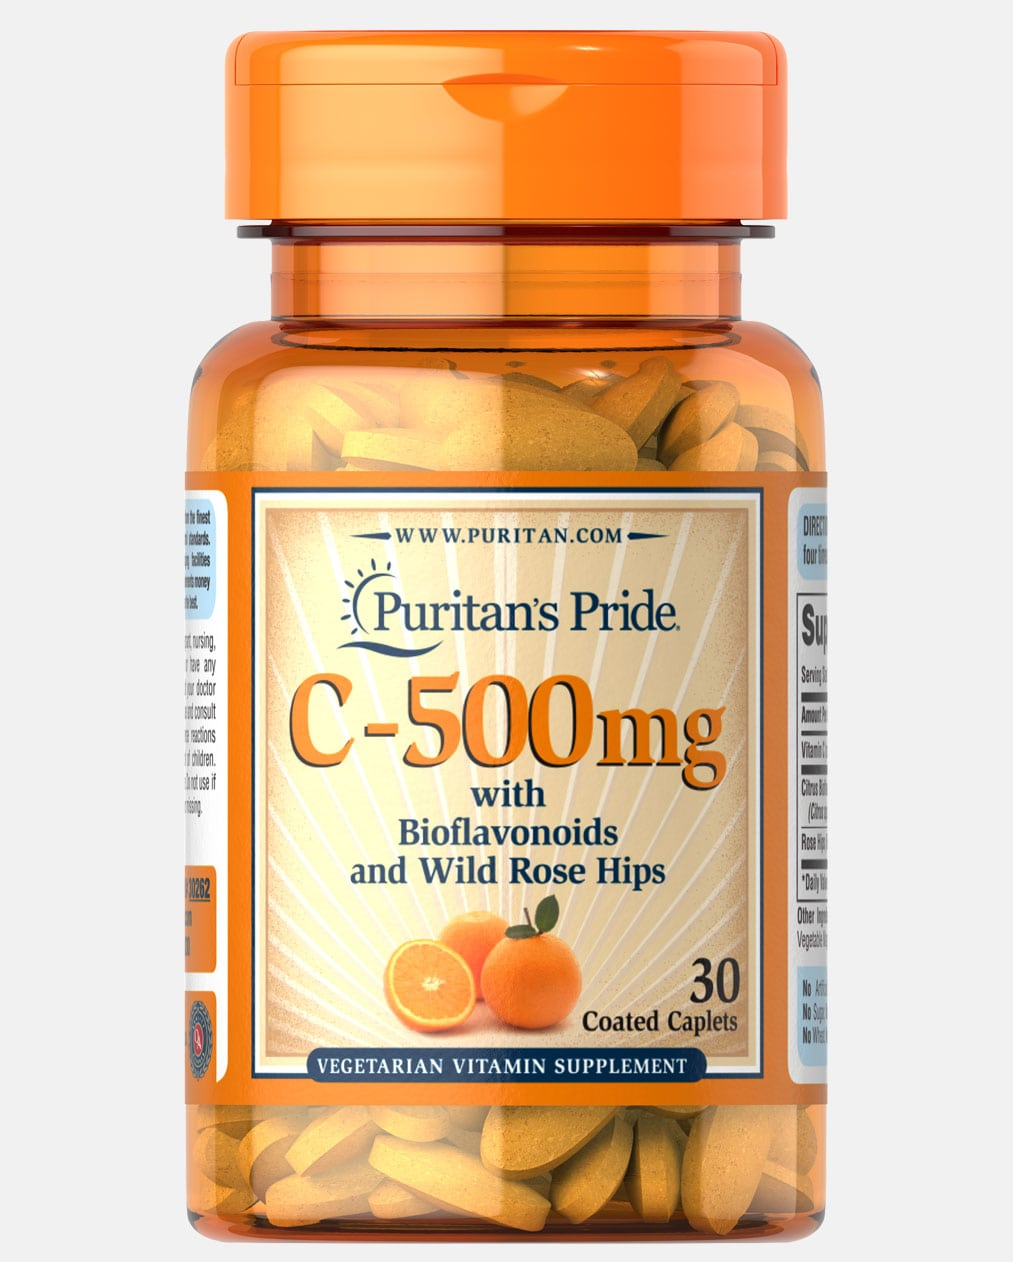 Vitamin C-500 mg with Bioflavonoids and Rose Hips Trial Size